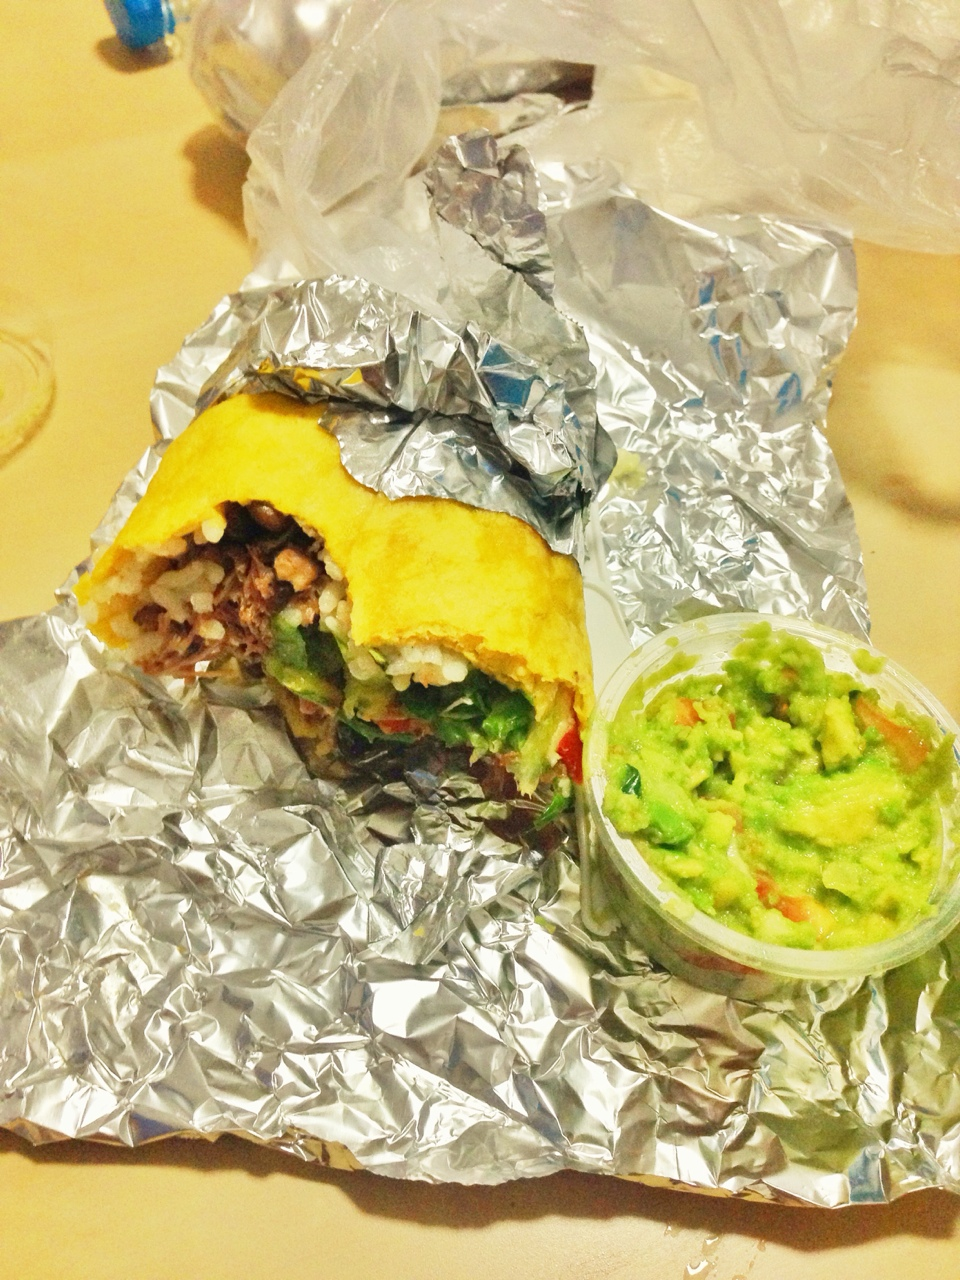 Went on a bike ride after work and low and behold, I found a burrito place, 'Lucky Lopez'. And yes, even in china, Guacamole is extra